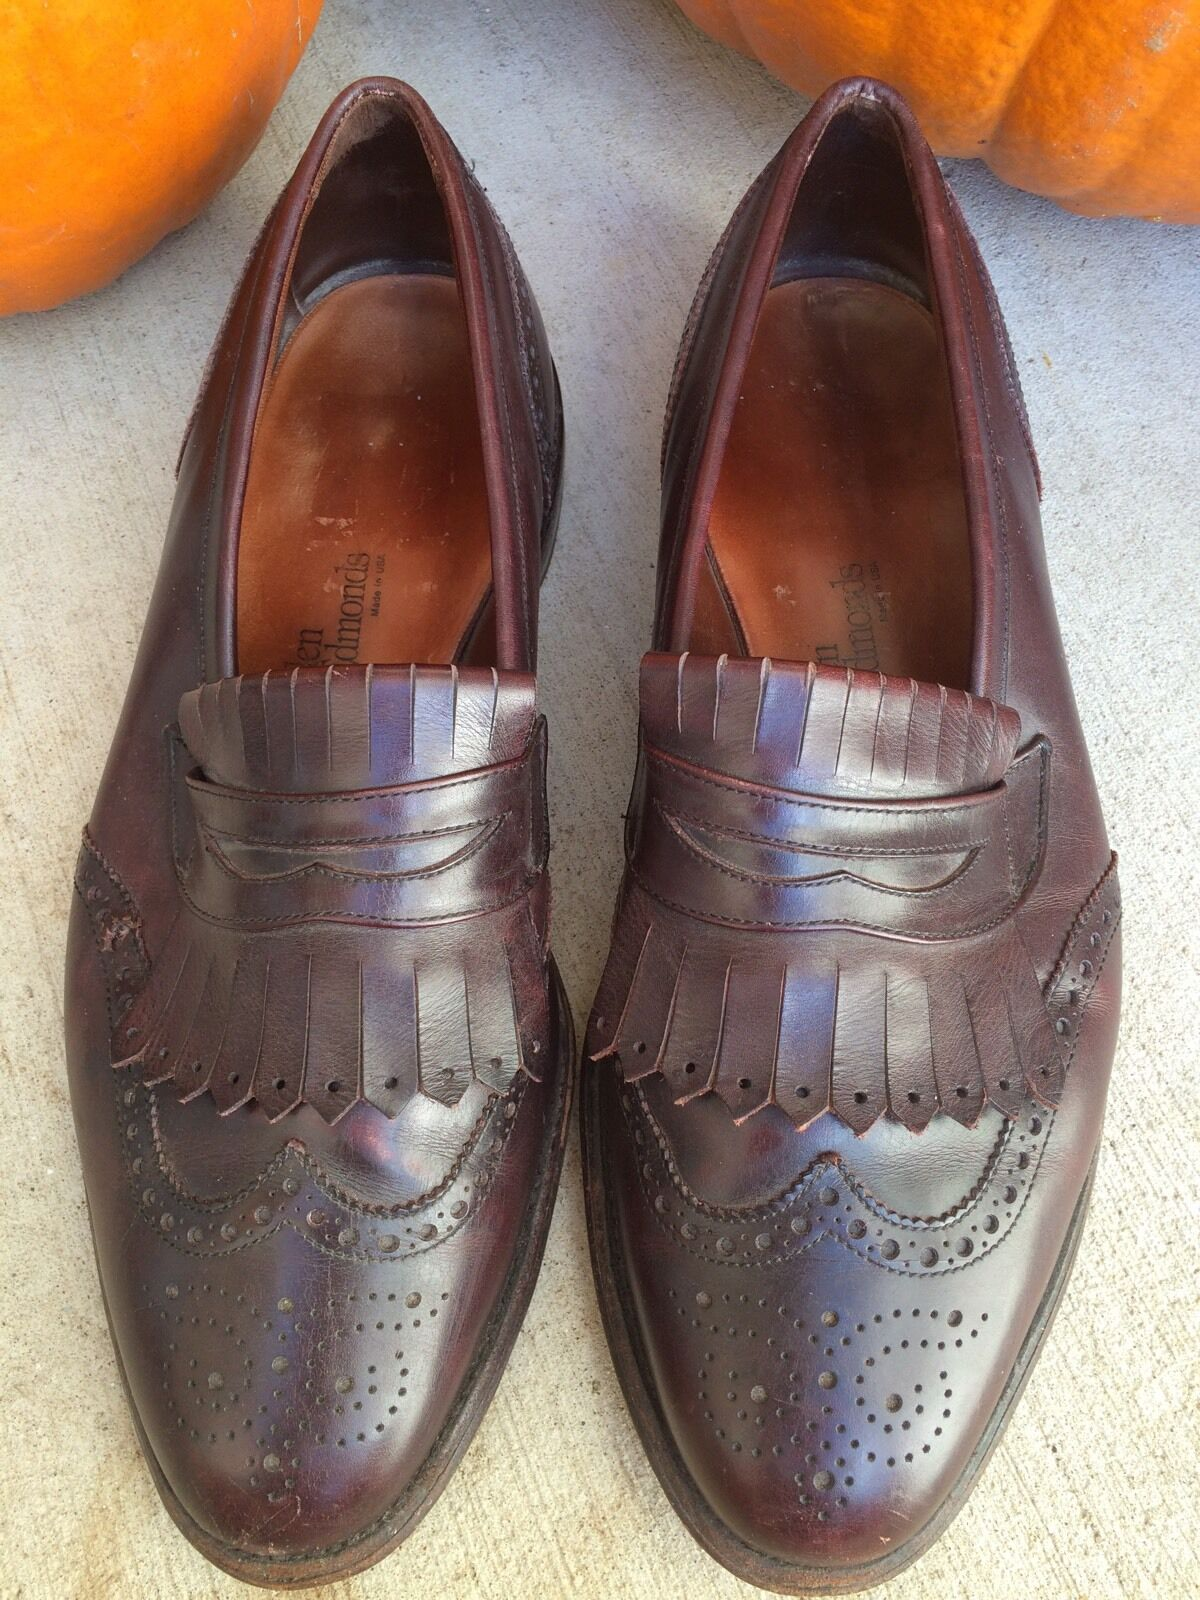 Allen Edmonds Wakefield Bourgogne marron cuir Tassel Loafers Chaussures Sz 11 M